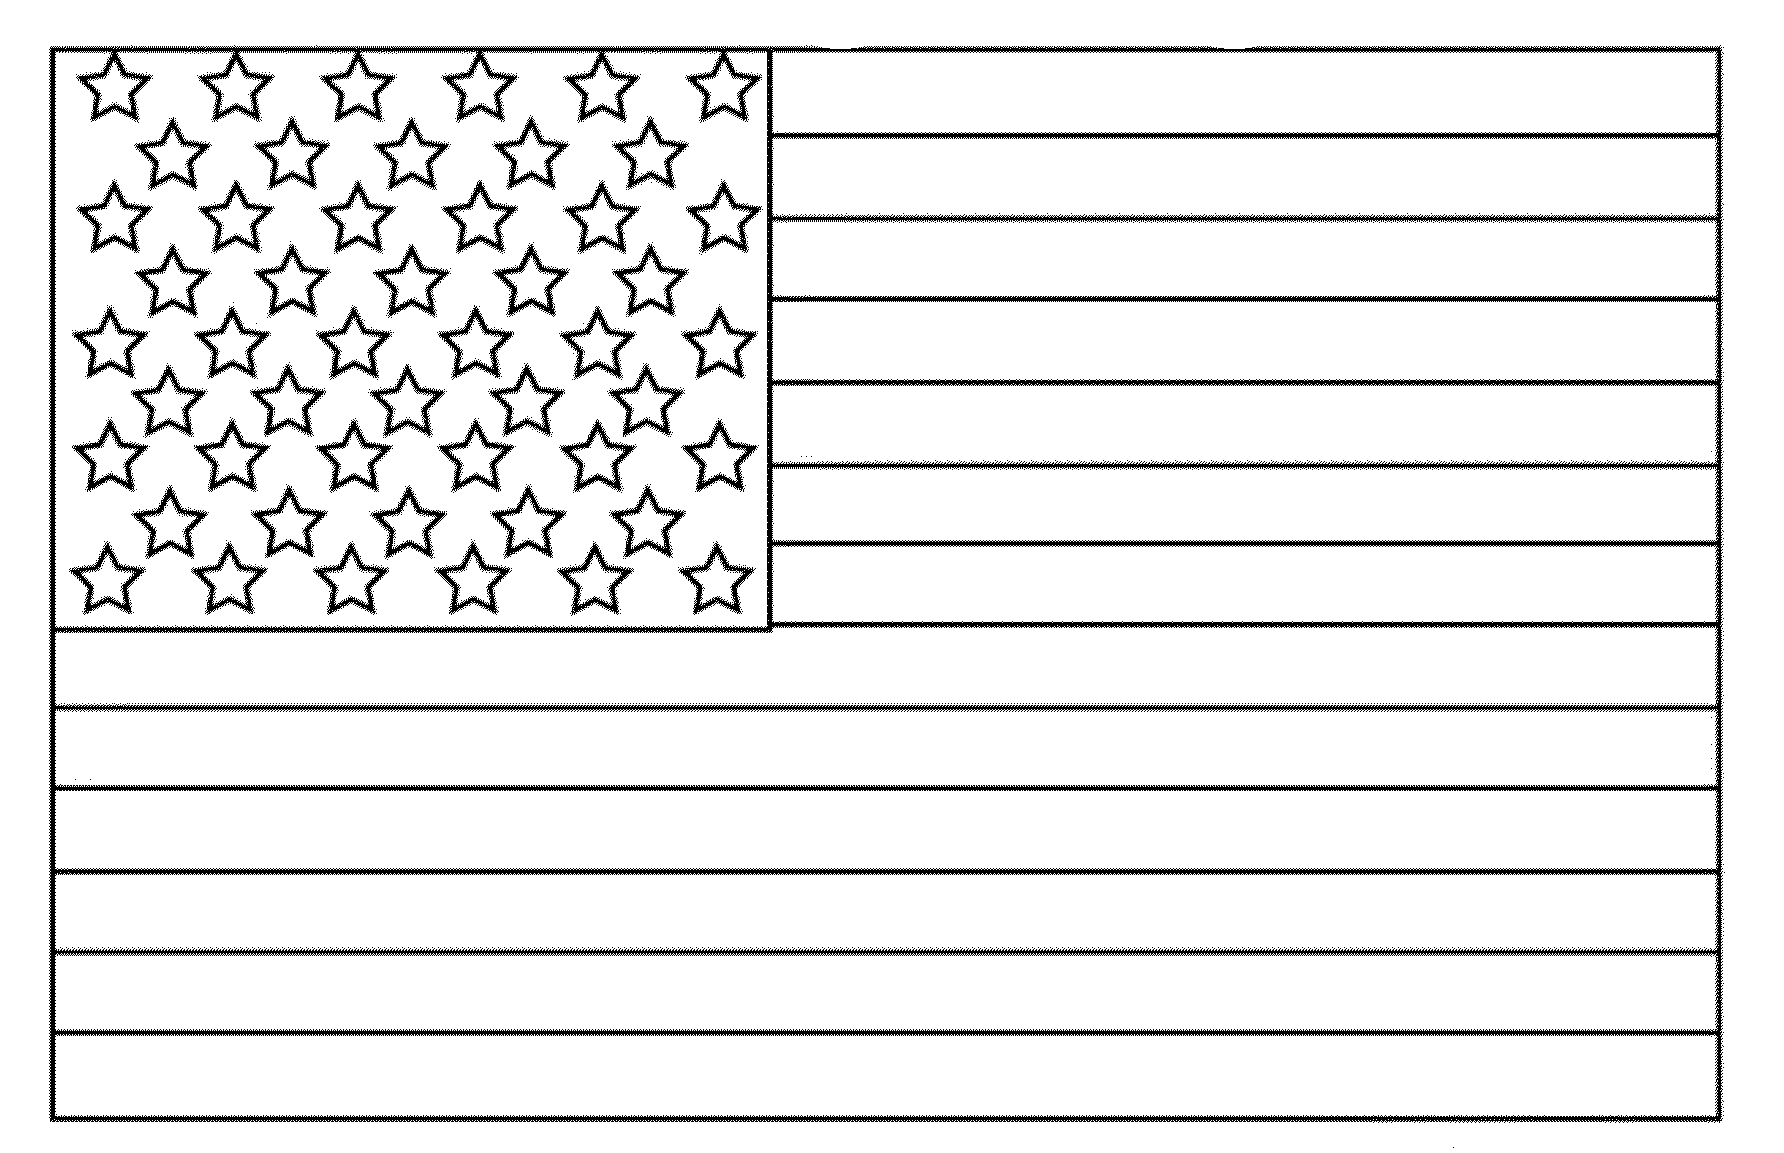 us flag coloring page american flag coloring pages best coloring pages for kids us flag page coloring 1 1